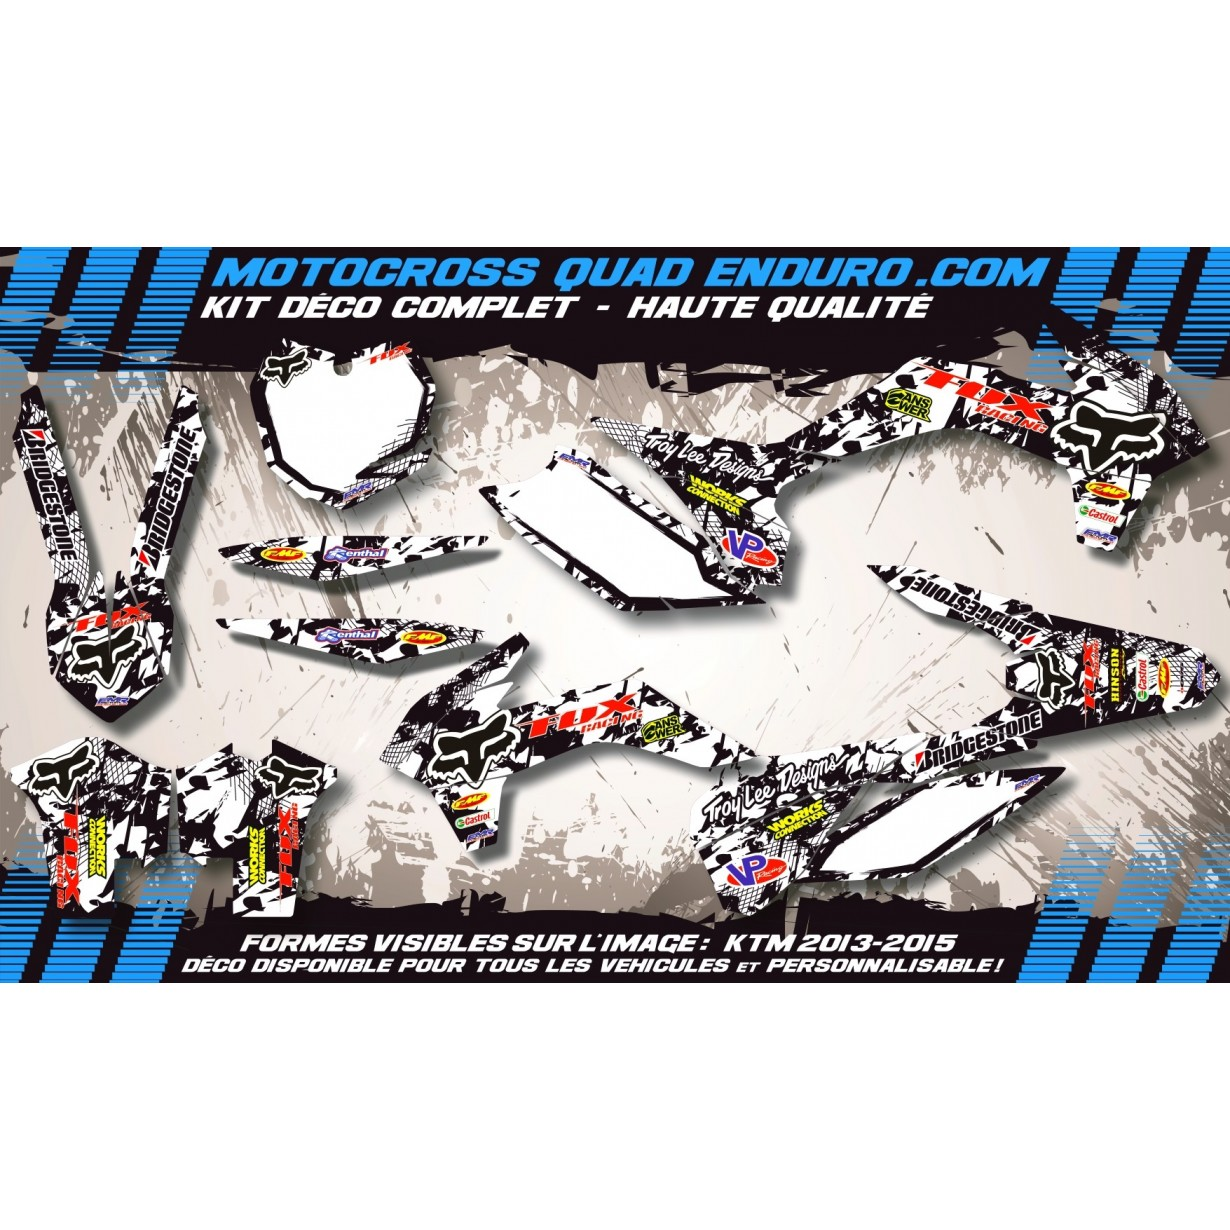 KIT DÉCO Perso 50 RR enduro 2007 FOX MA9F